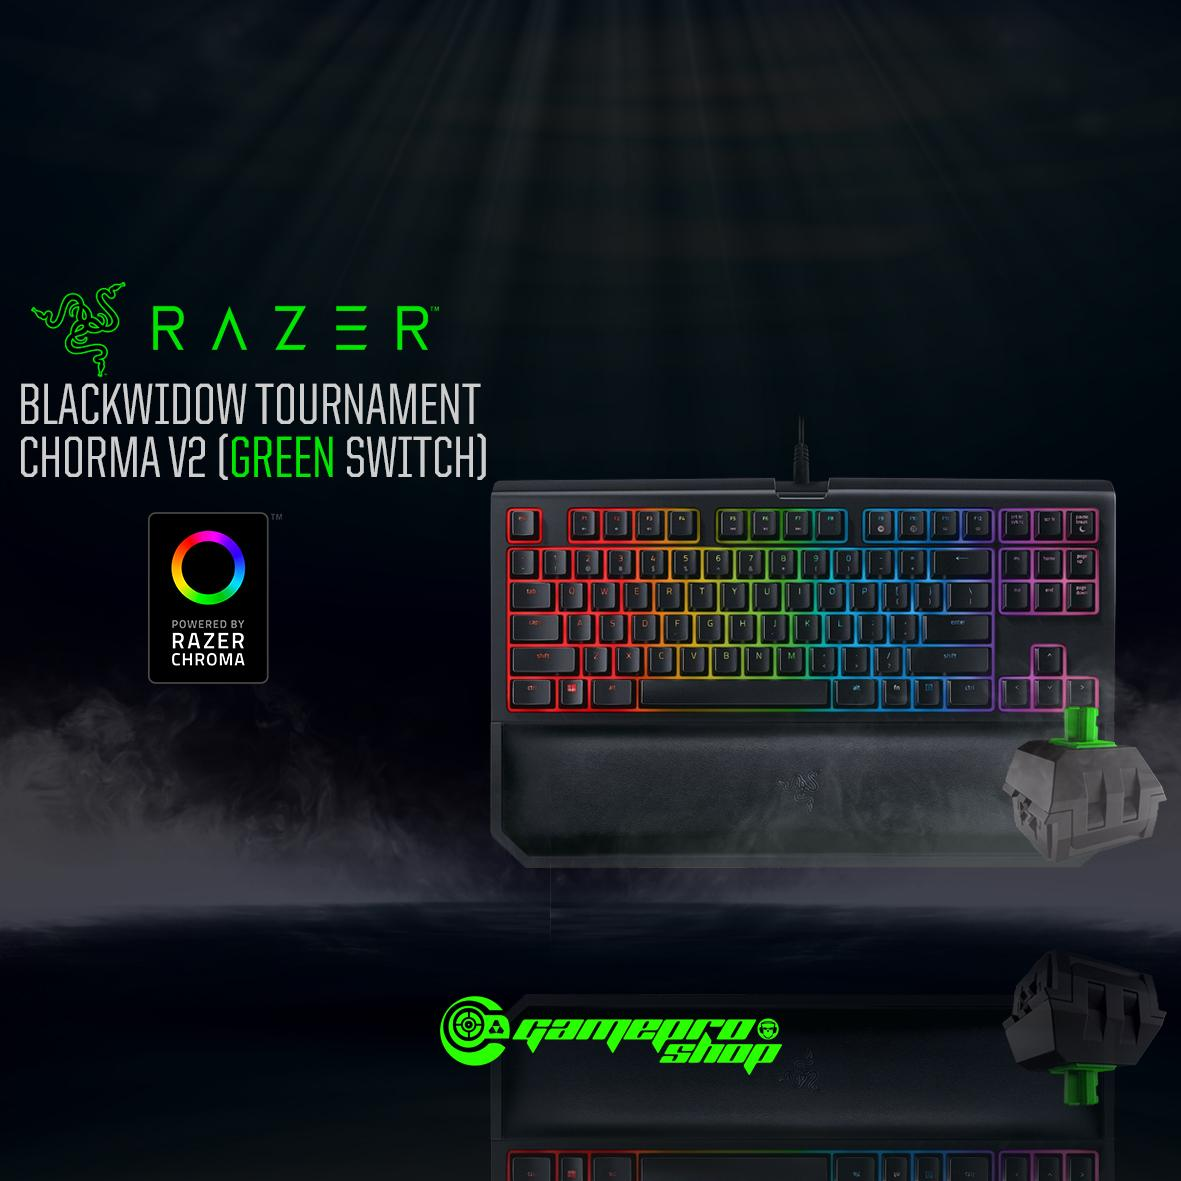 Razer Blackwidow Tournament Chroma V2 (GREEN SWITCH) *GSS PROMO*